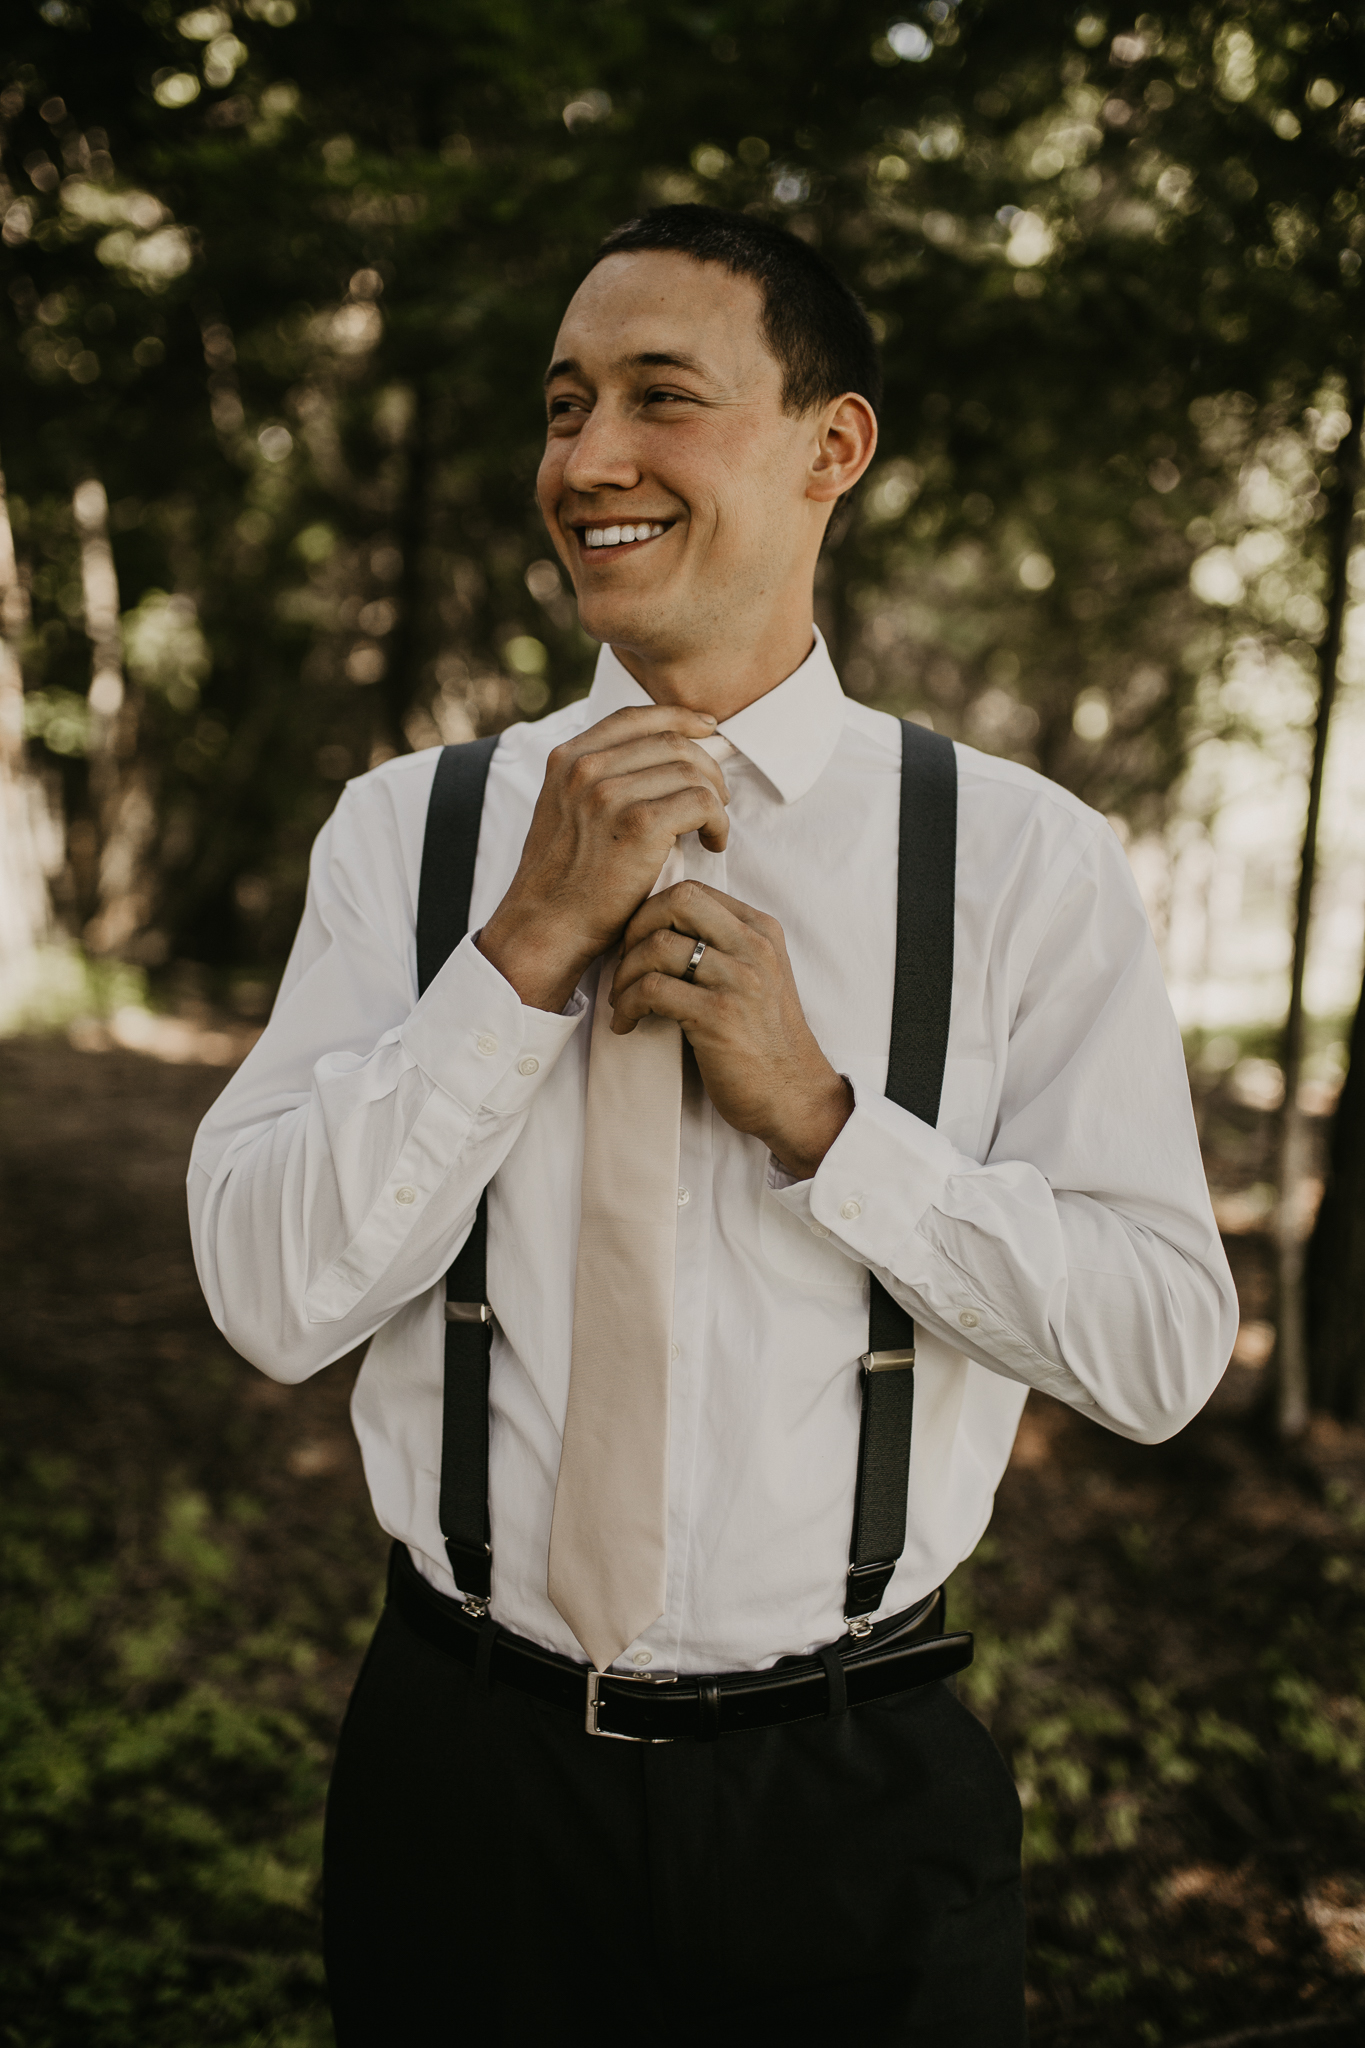 Groom portraits being taken in a forest in the PNW